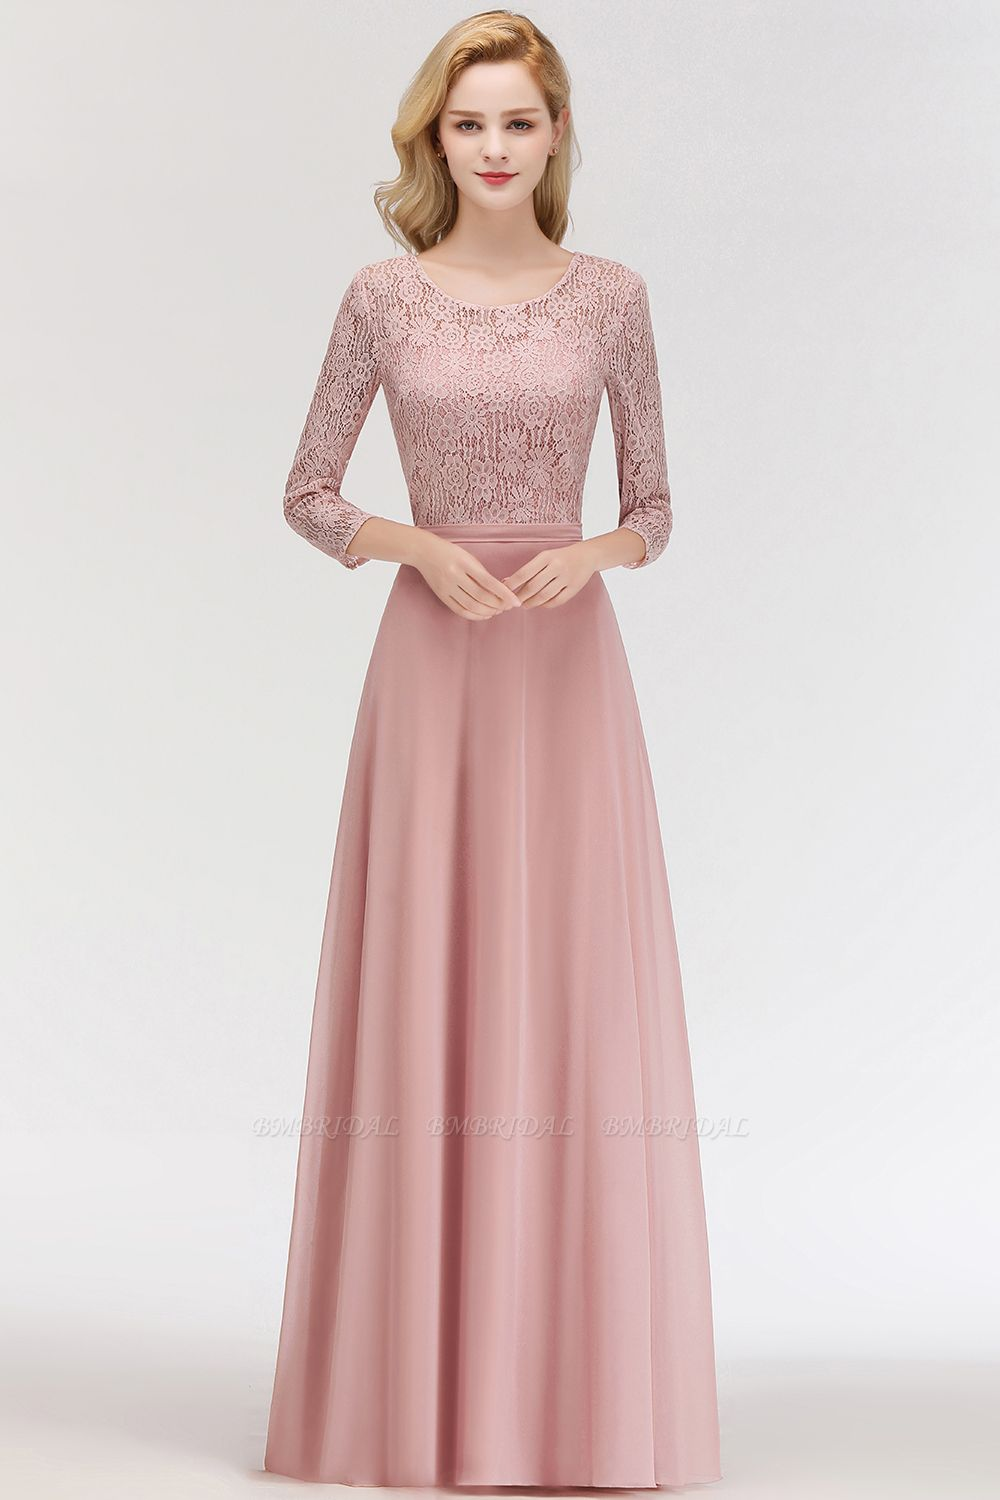 BMbridal Elegant 3/4 Sleeves Lace Long Dusty Rose Bridesmaid Dresses Online